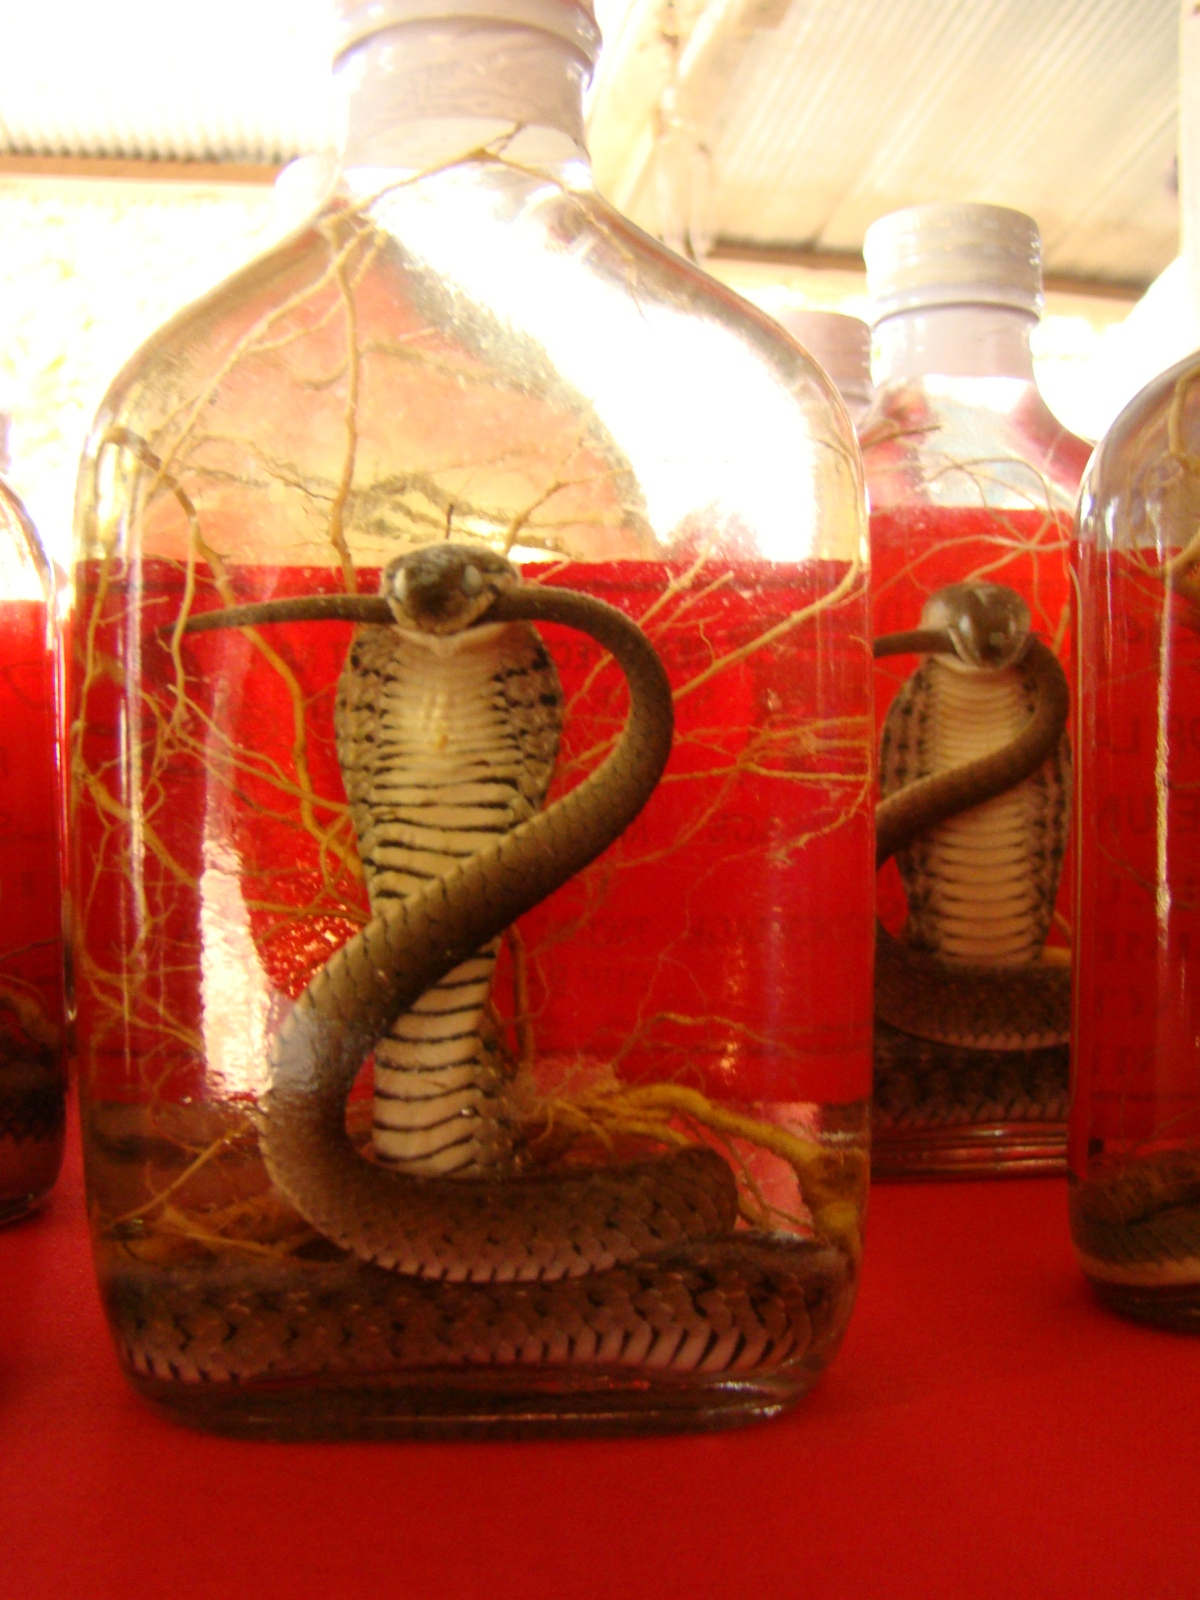 Would you drink snake wine?